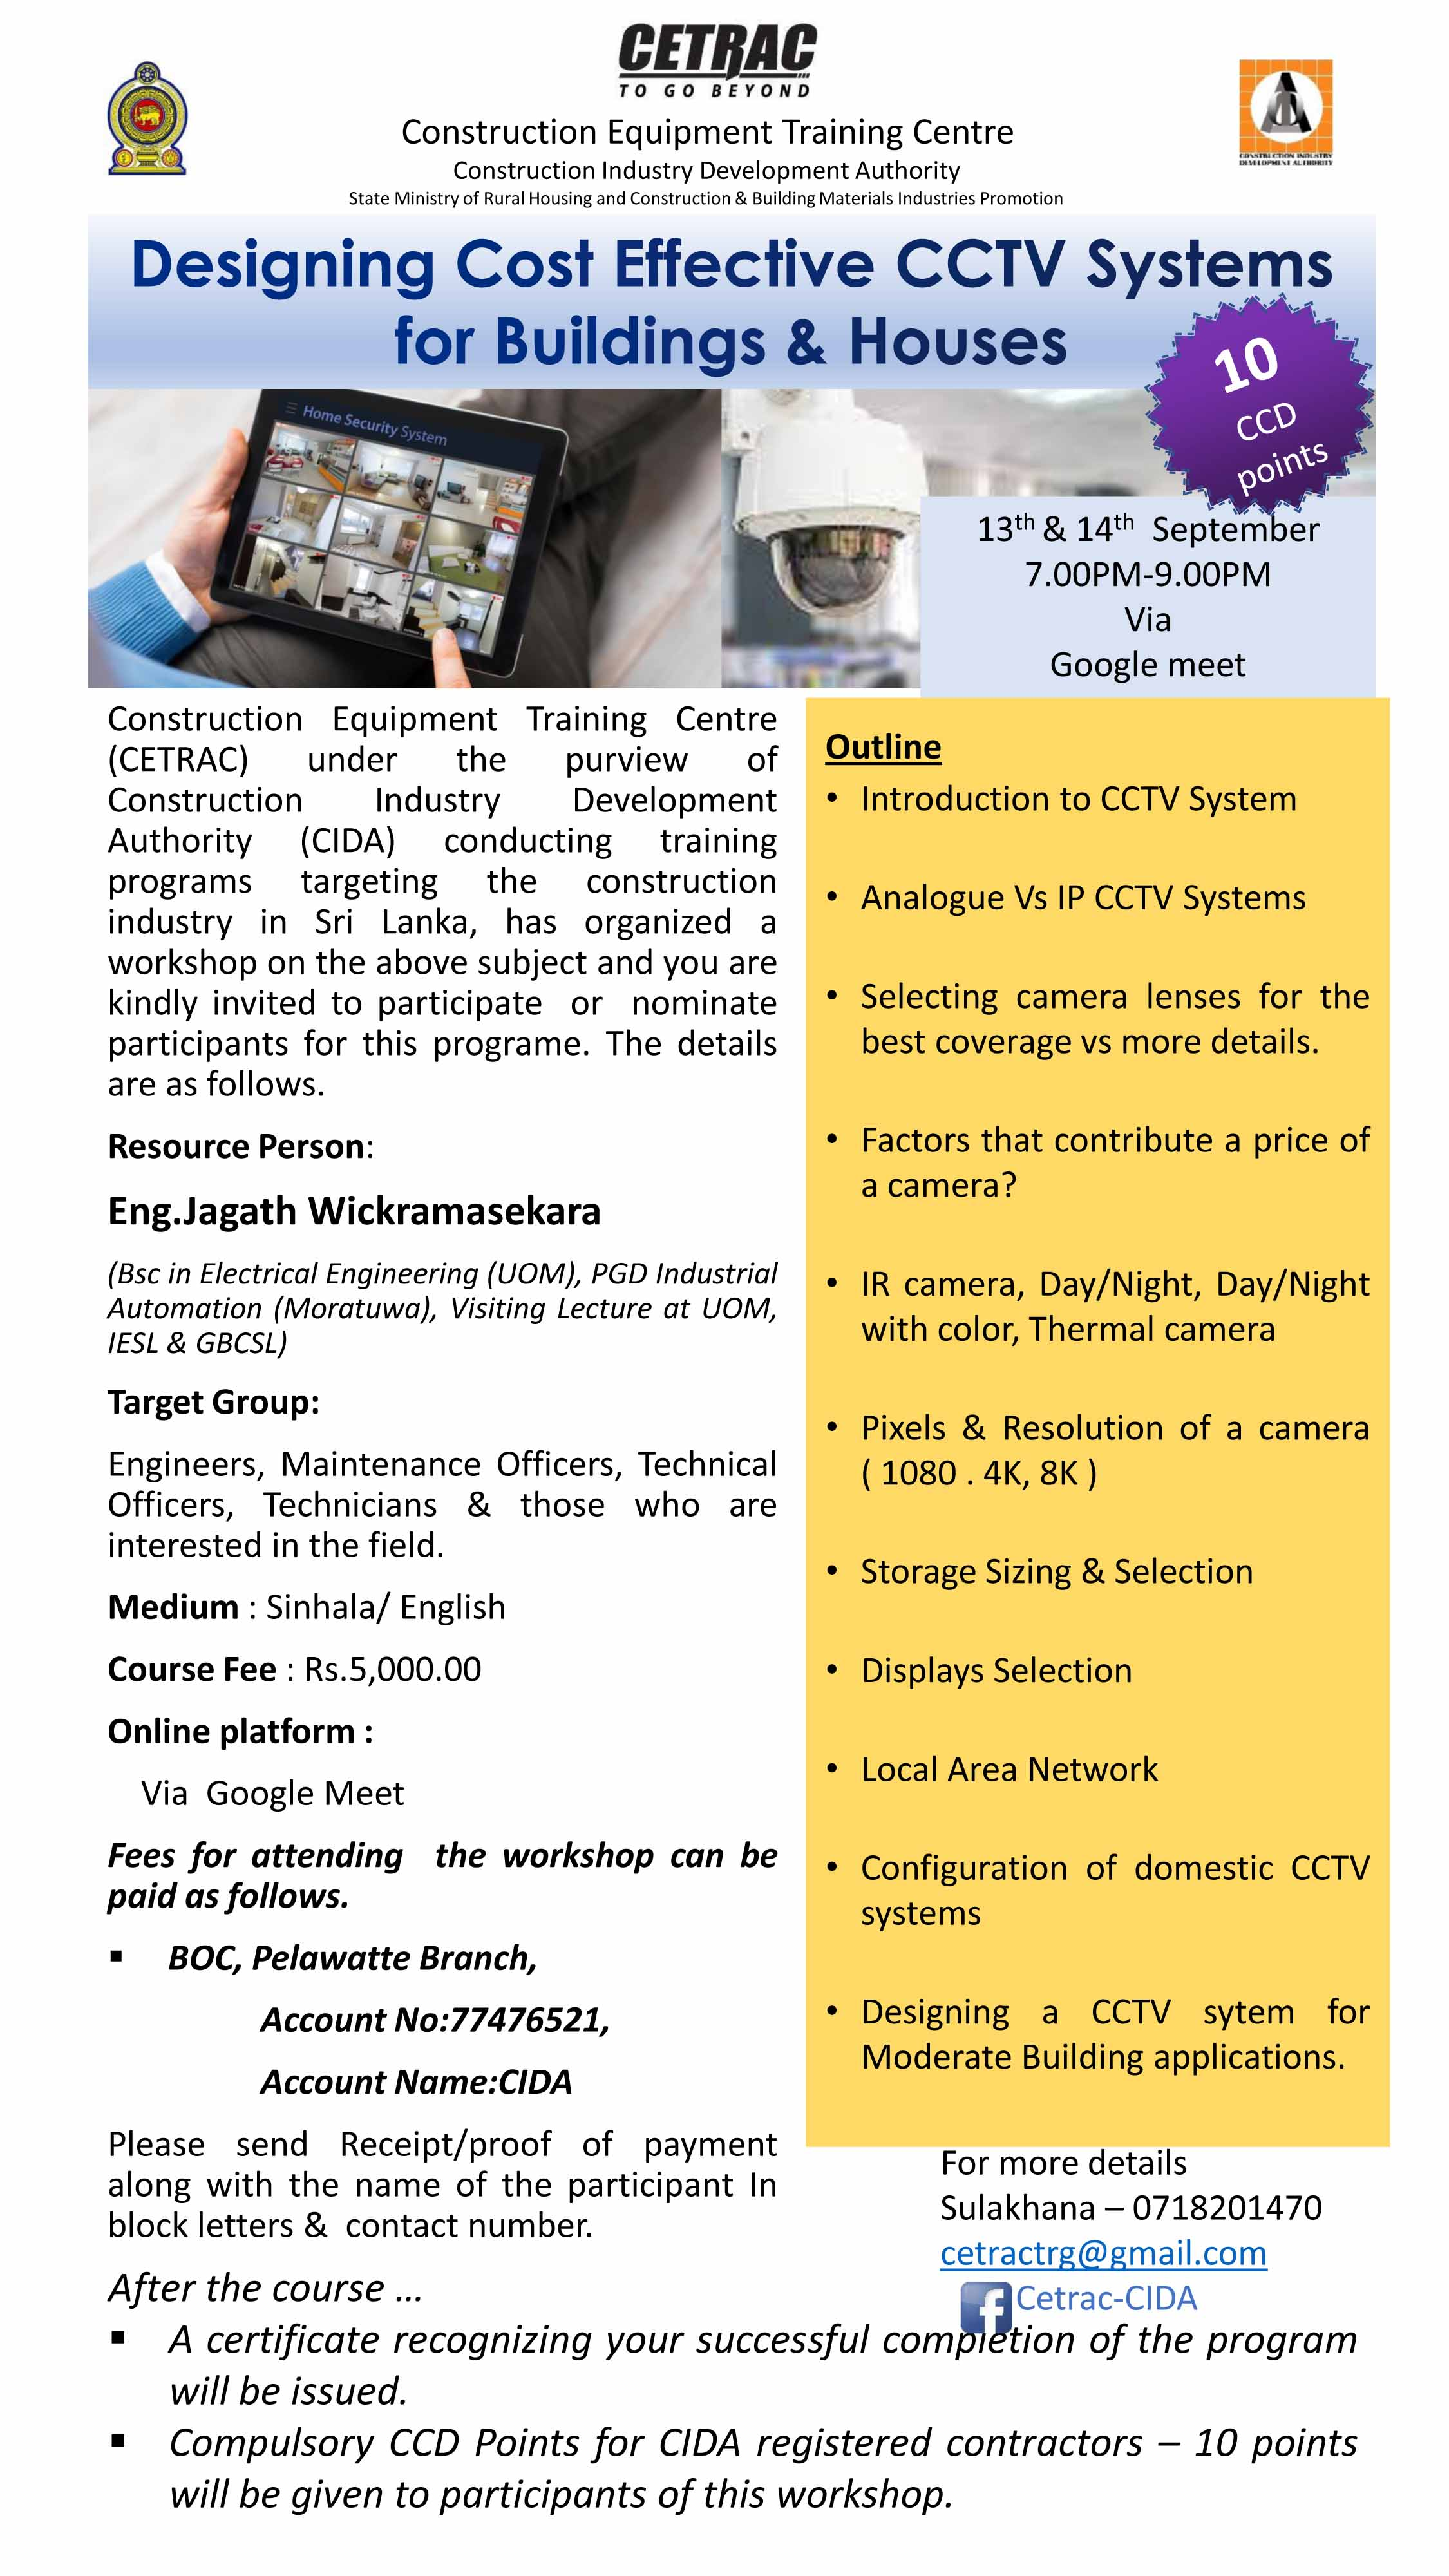 Workshop on Designing Cost Effective CCTV Systems for Buildings & Houses